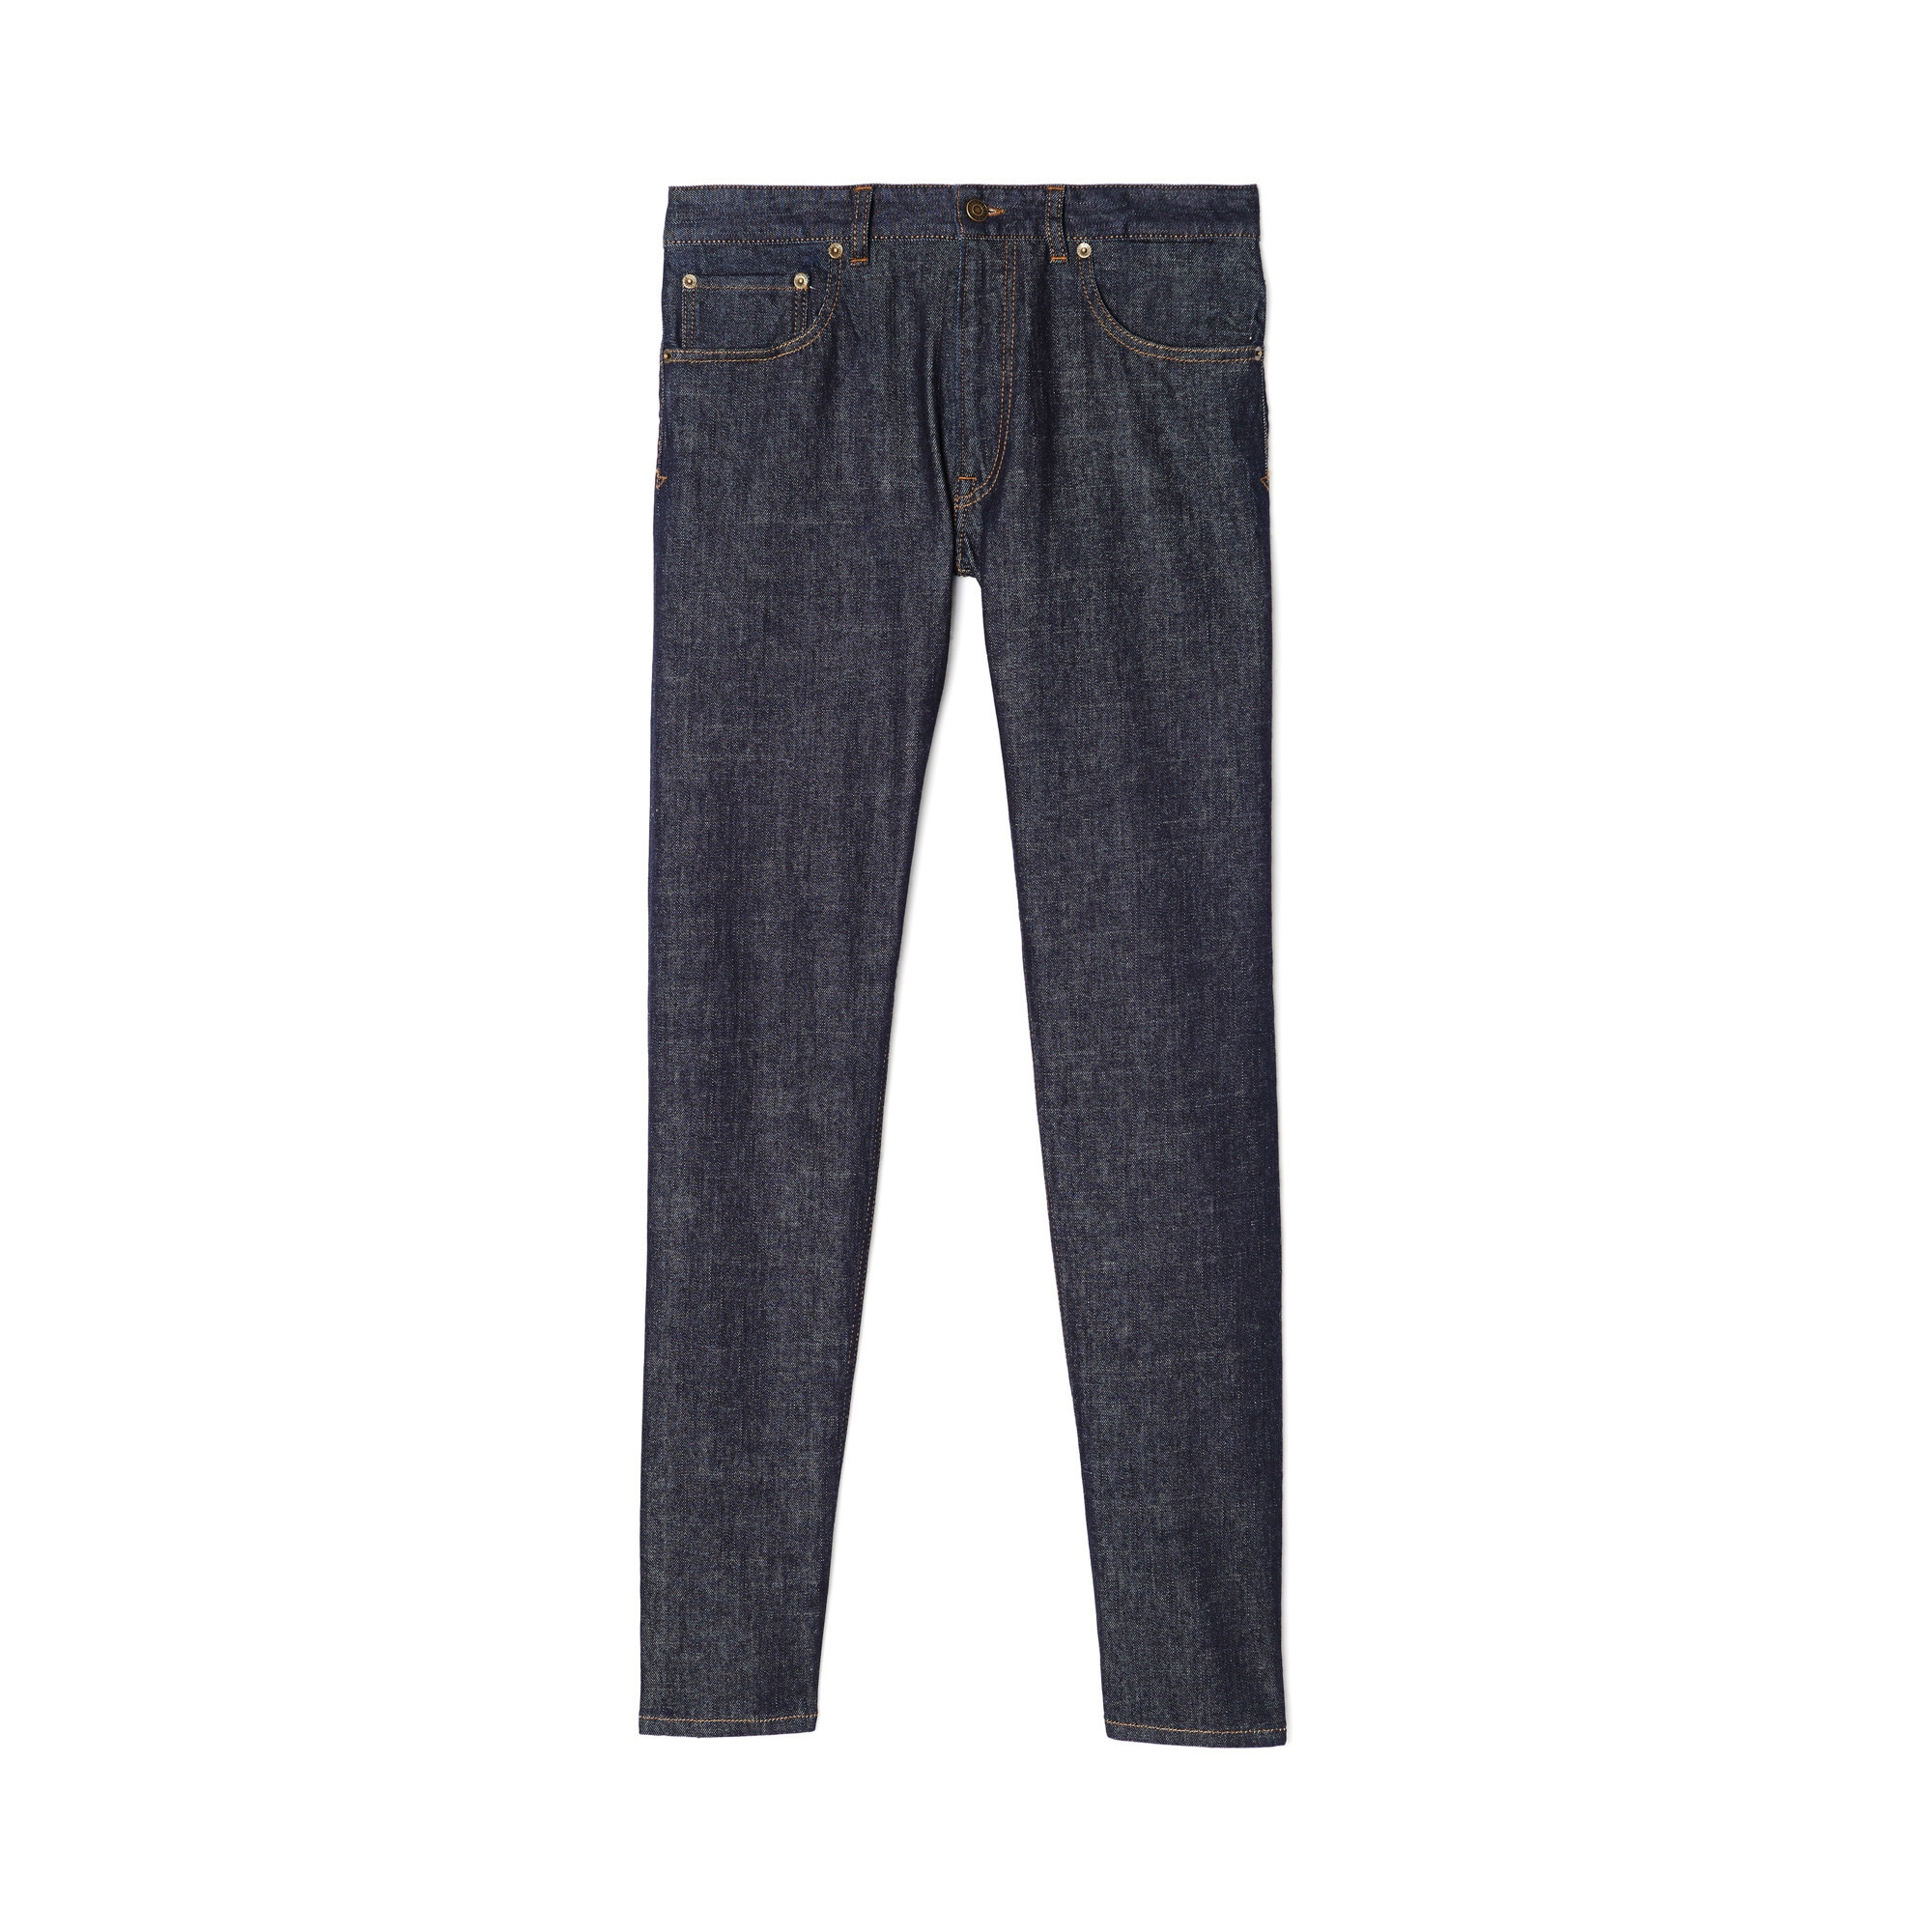 Men's Stretch Denim Pants